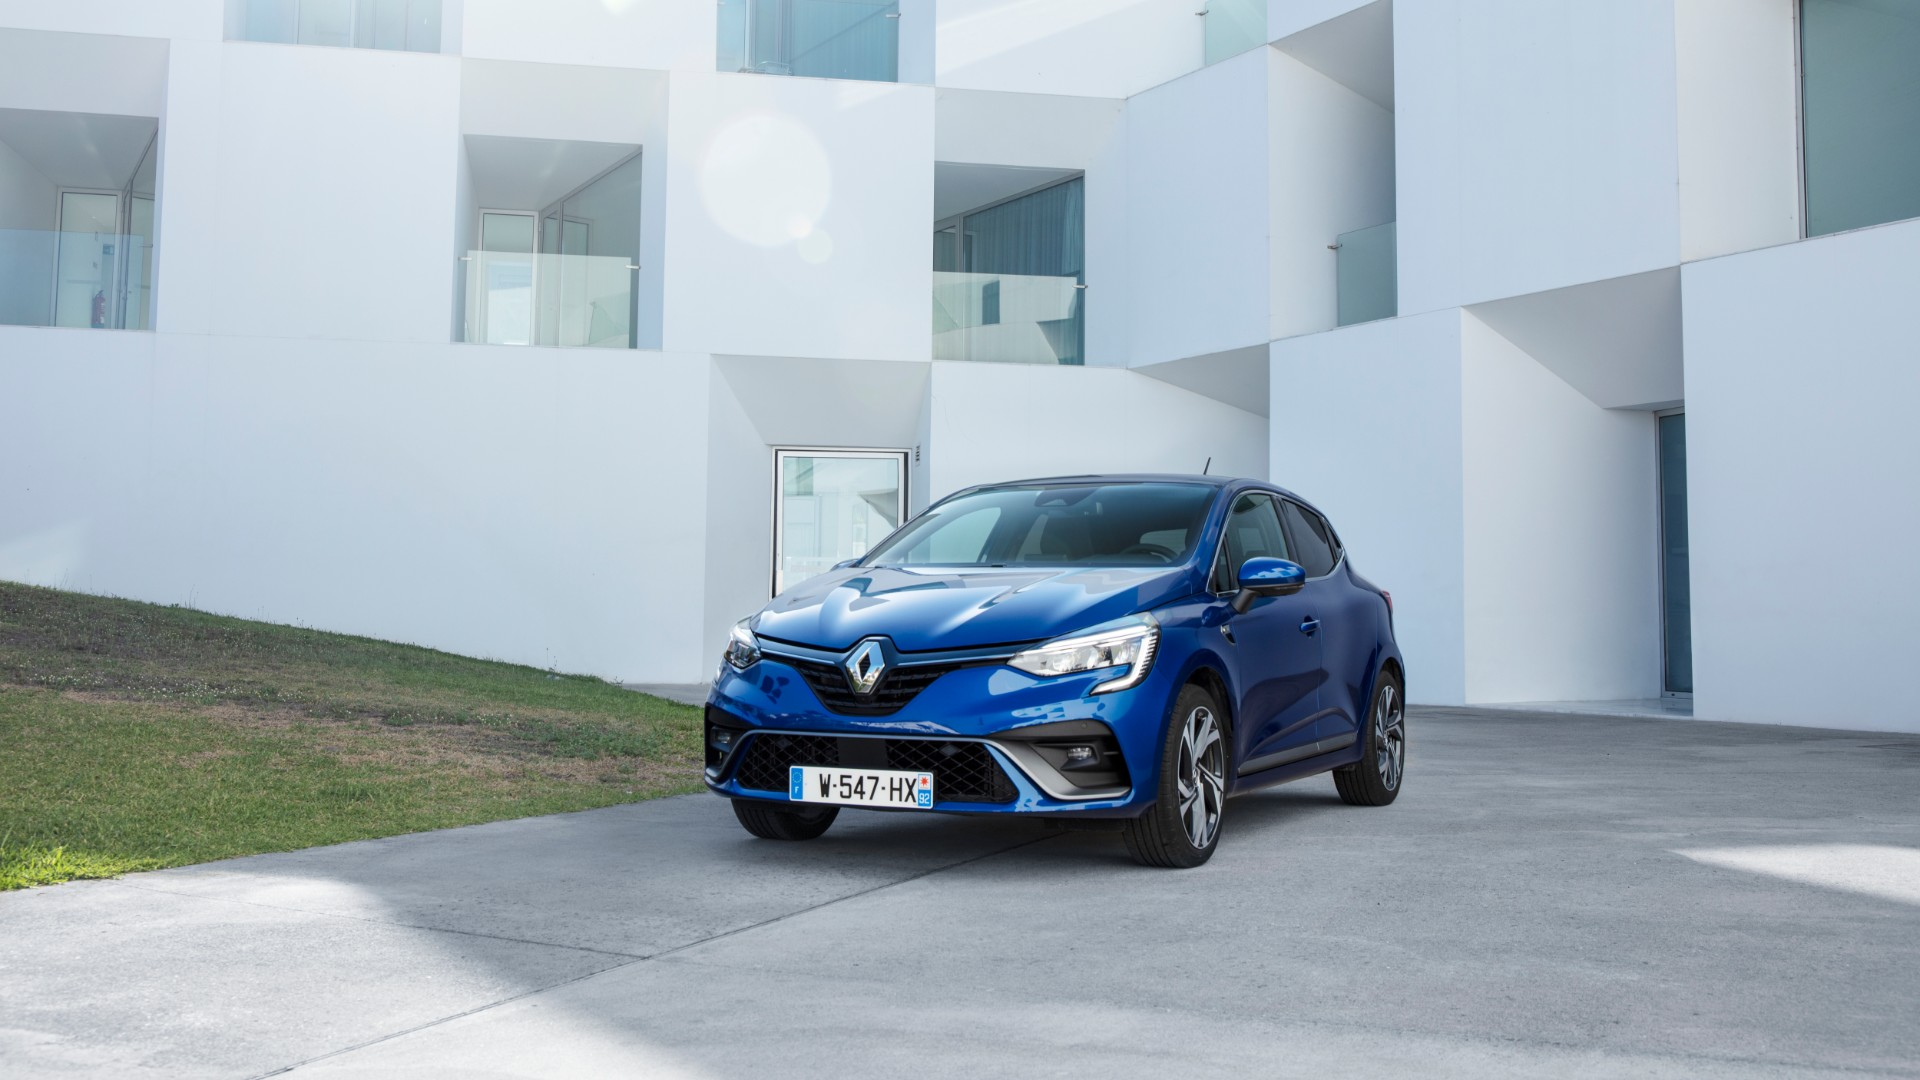 2020 Renault Clio price and specs